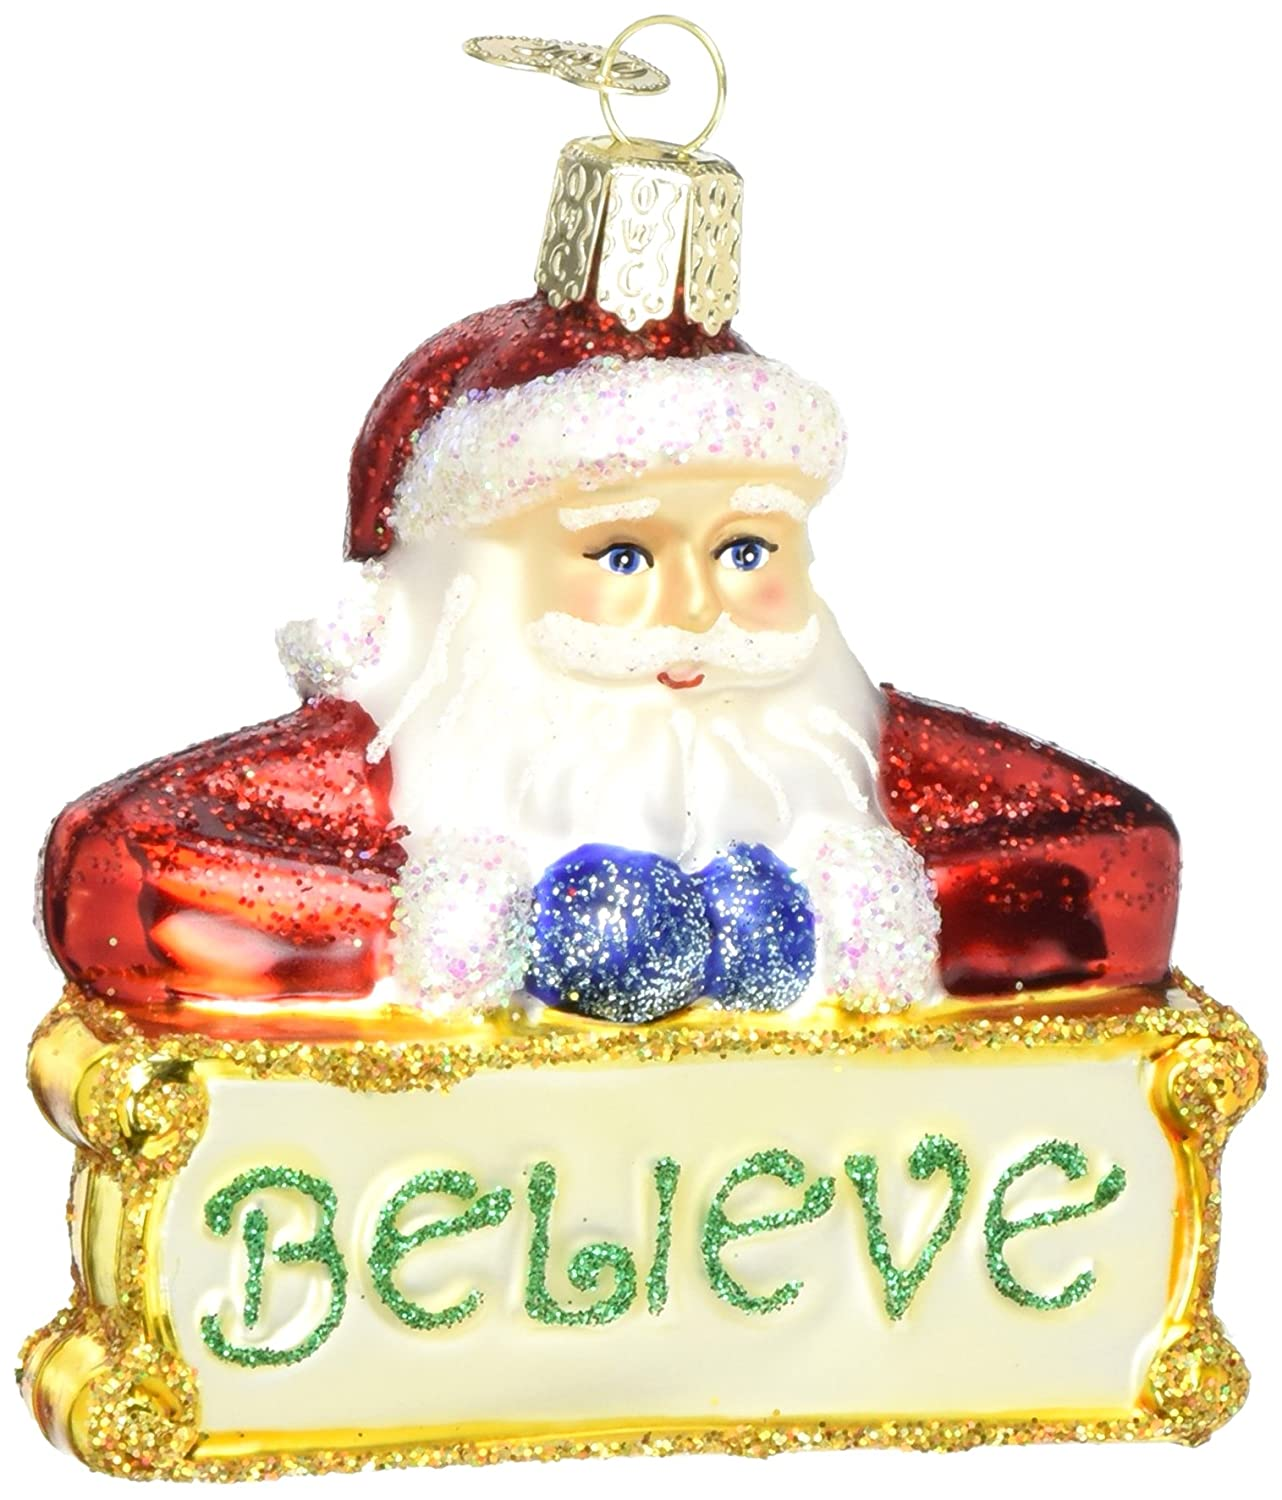 Old World Christmas Assortment Glass Blown Ornaments for Christmas Tree Believe Santa